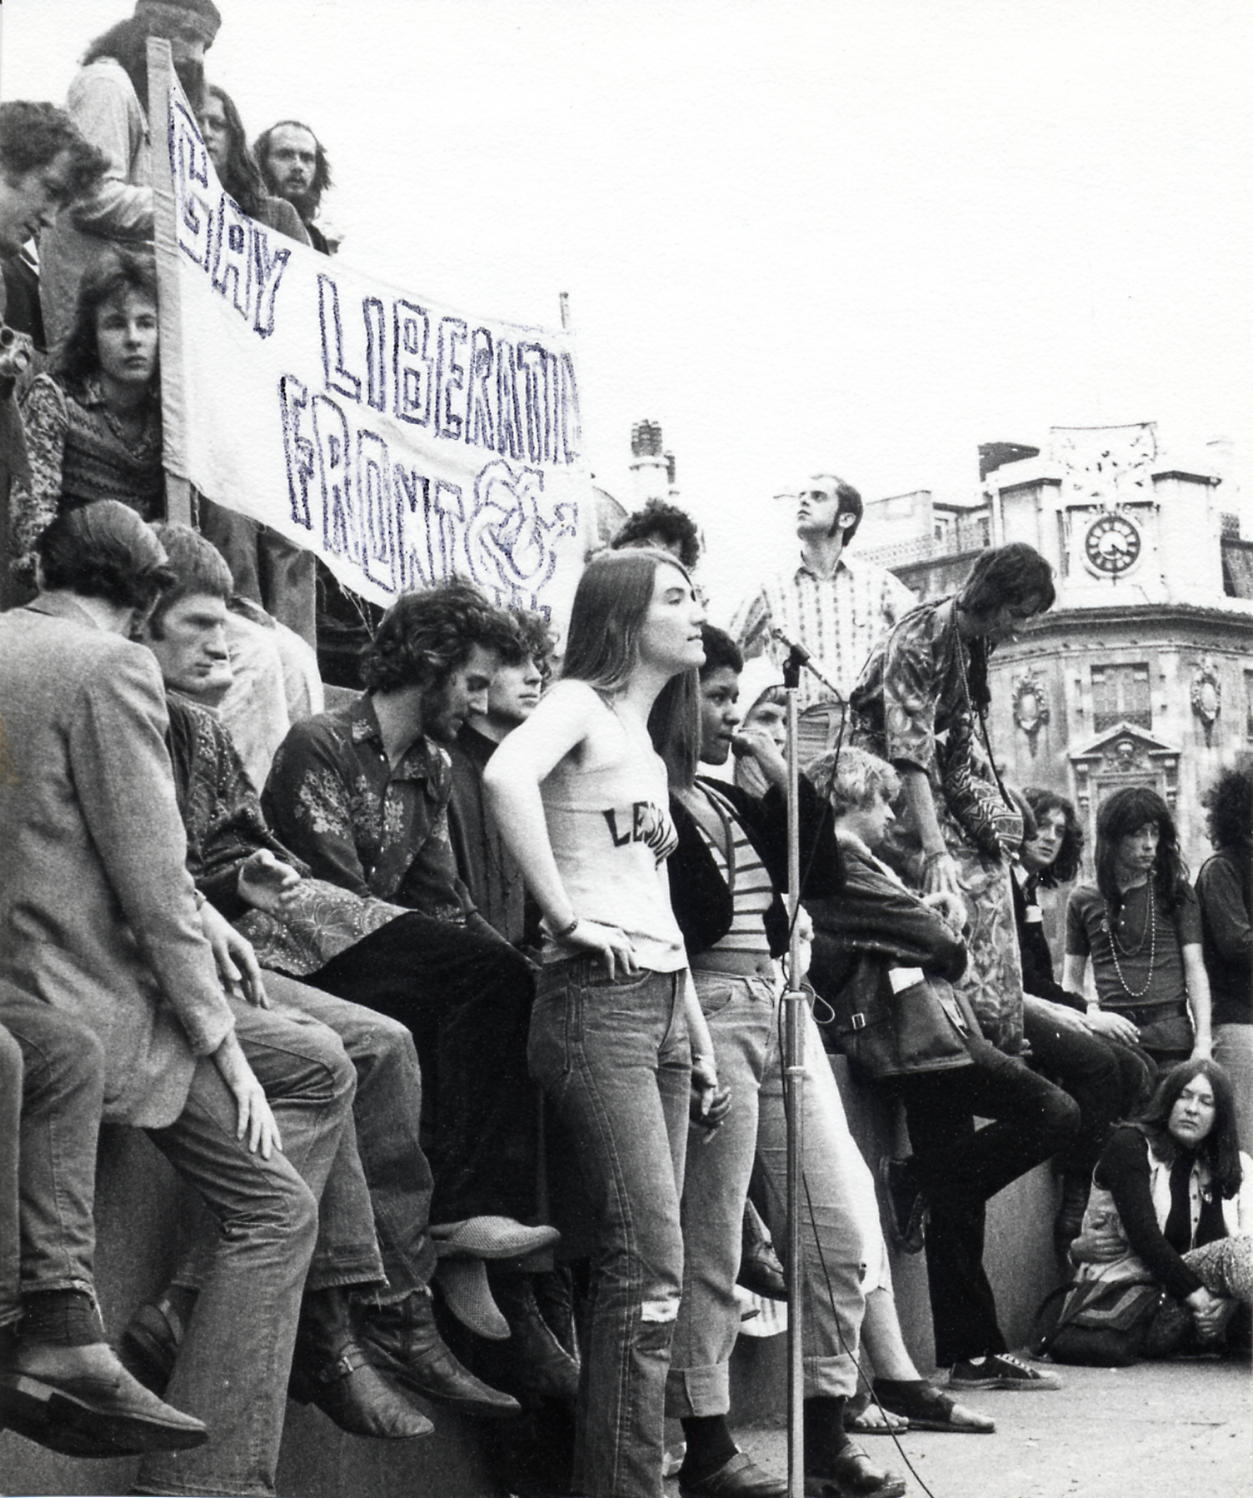 Black and white photo of the Gay Liberation Front